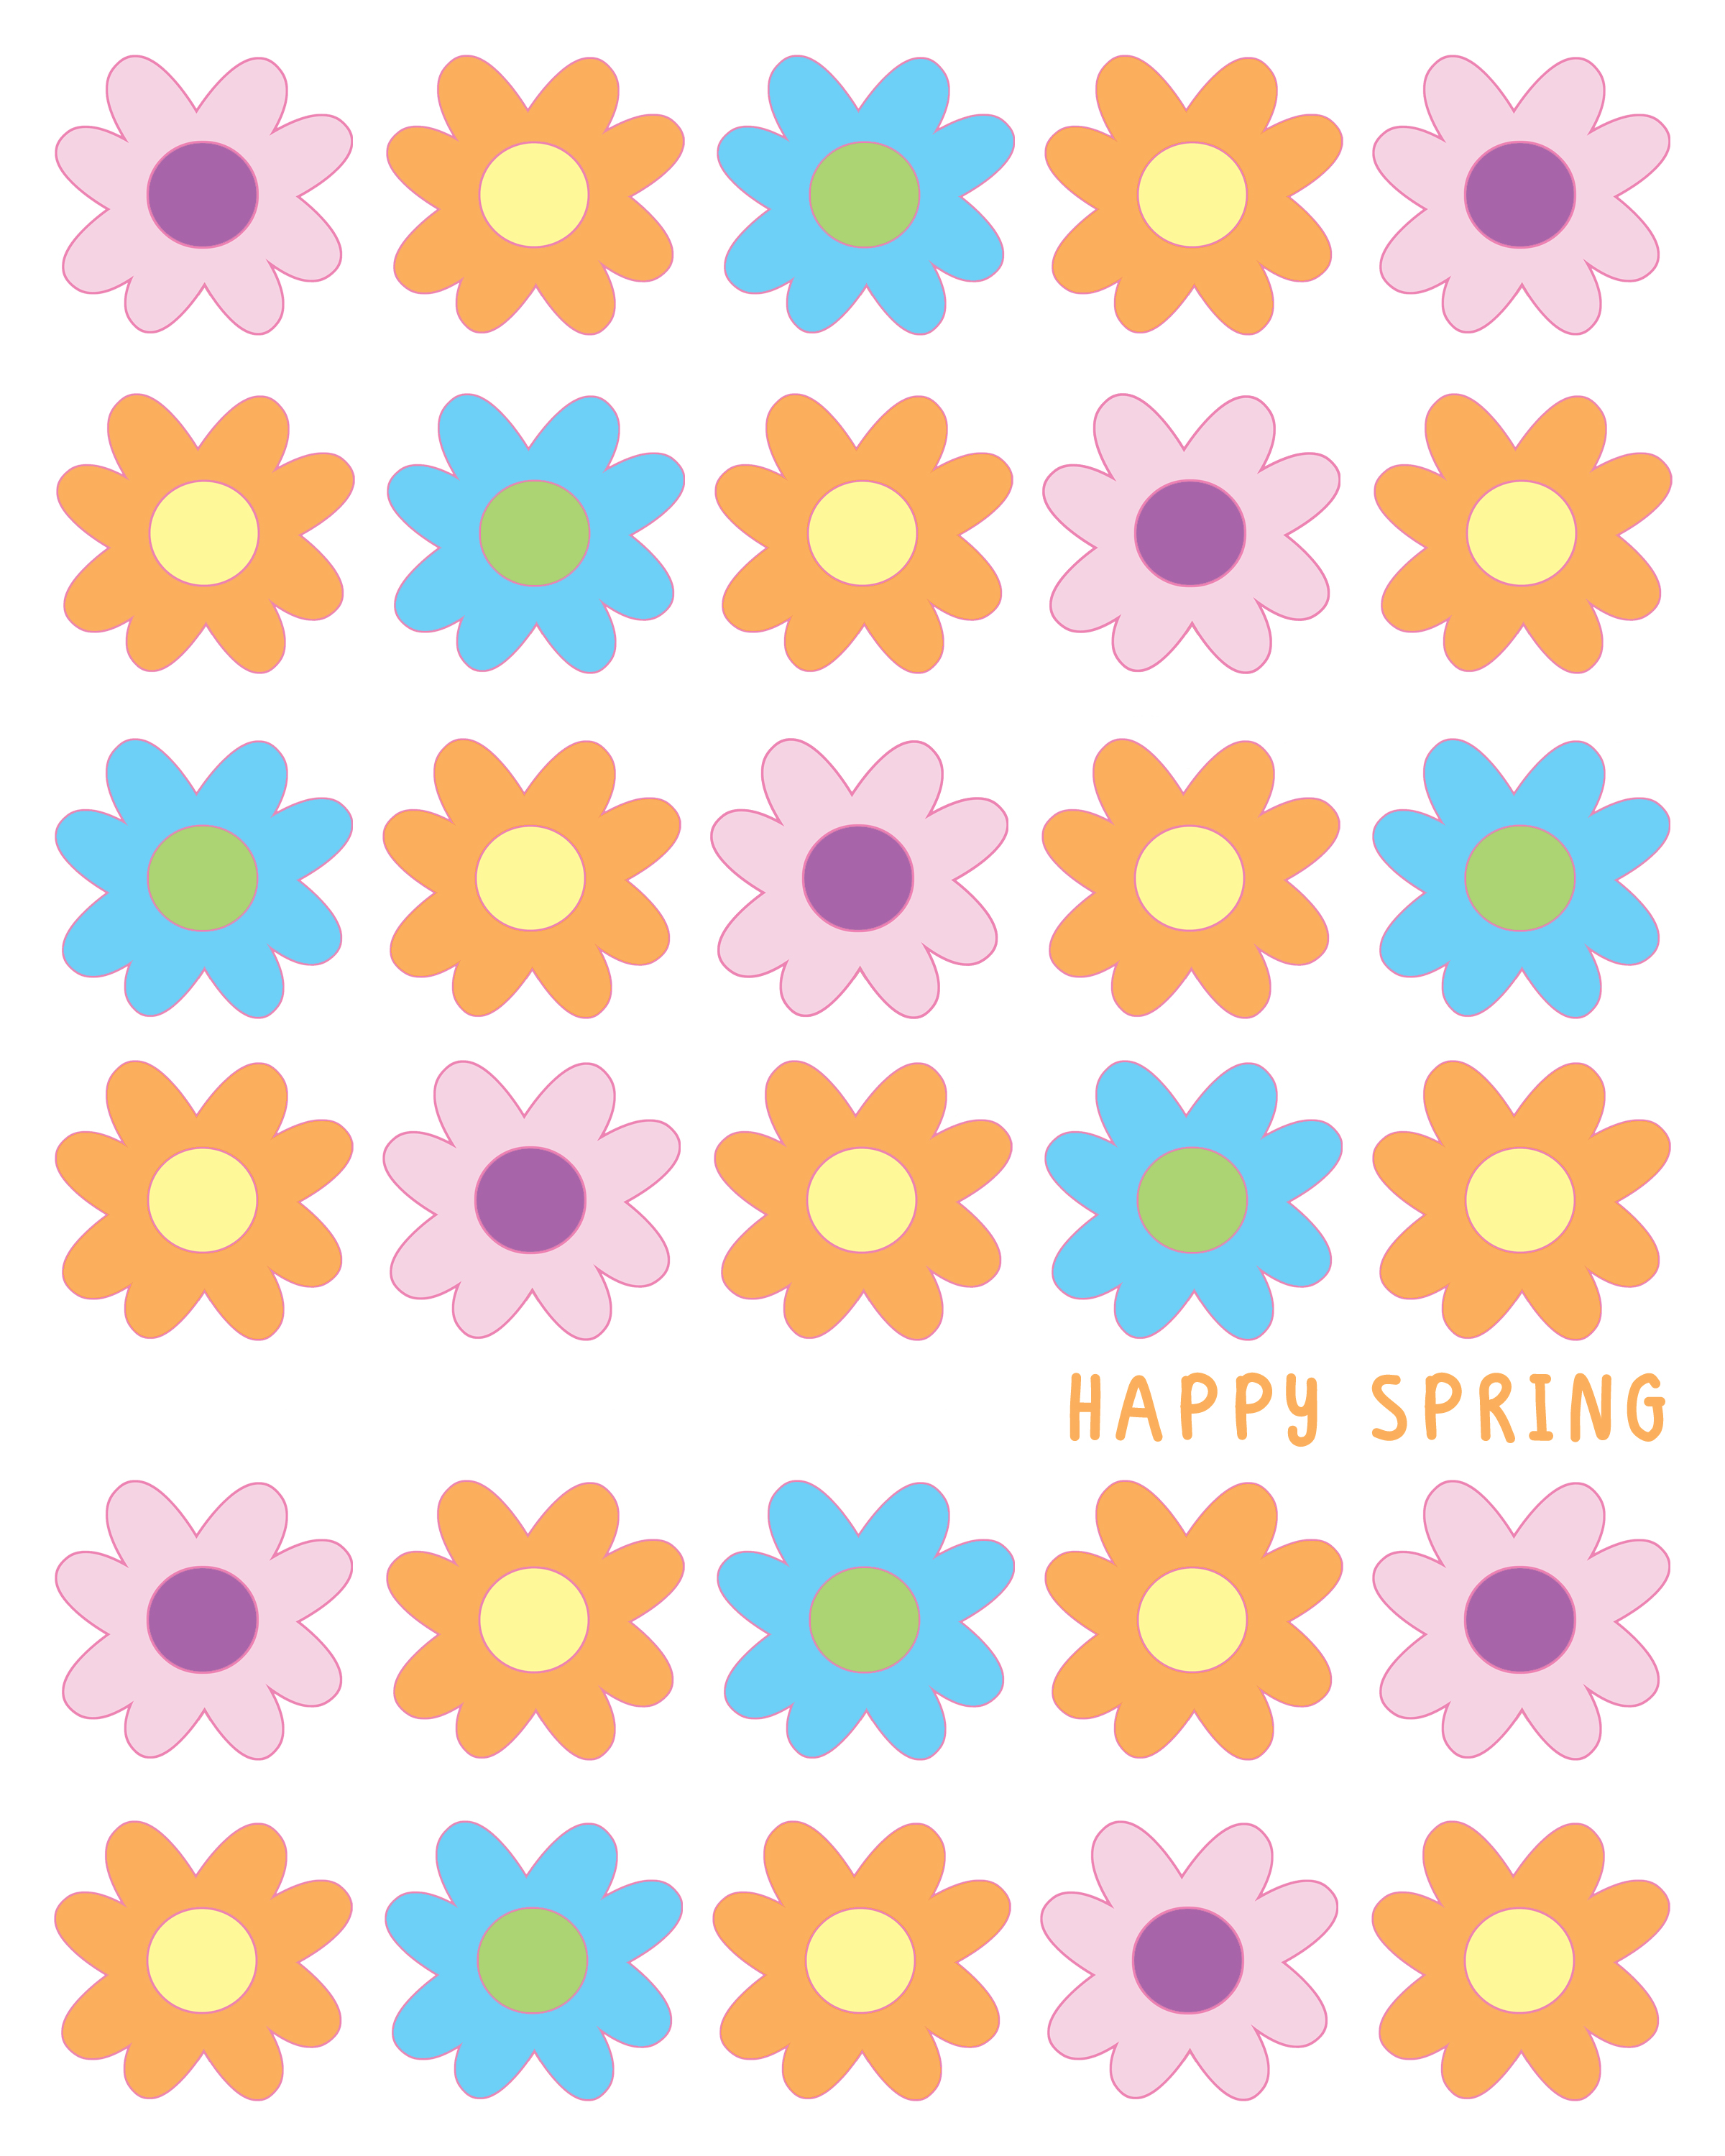 Want to find more spring flower illustrations for your designs - come ...